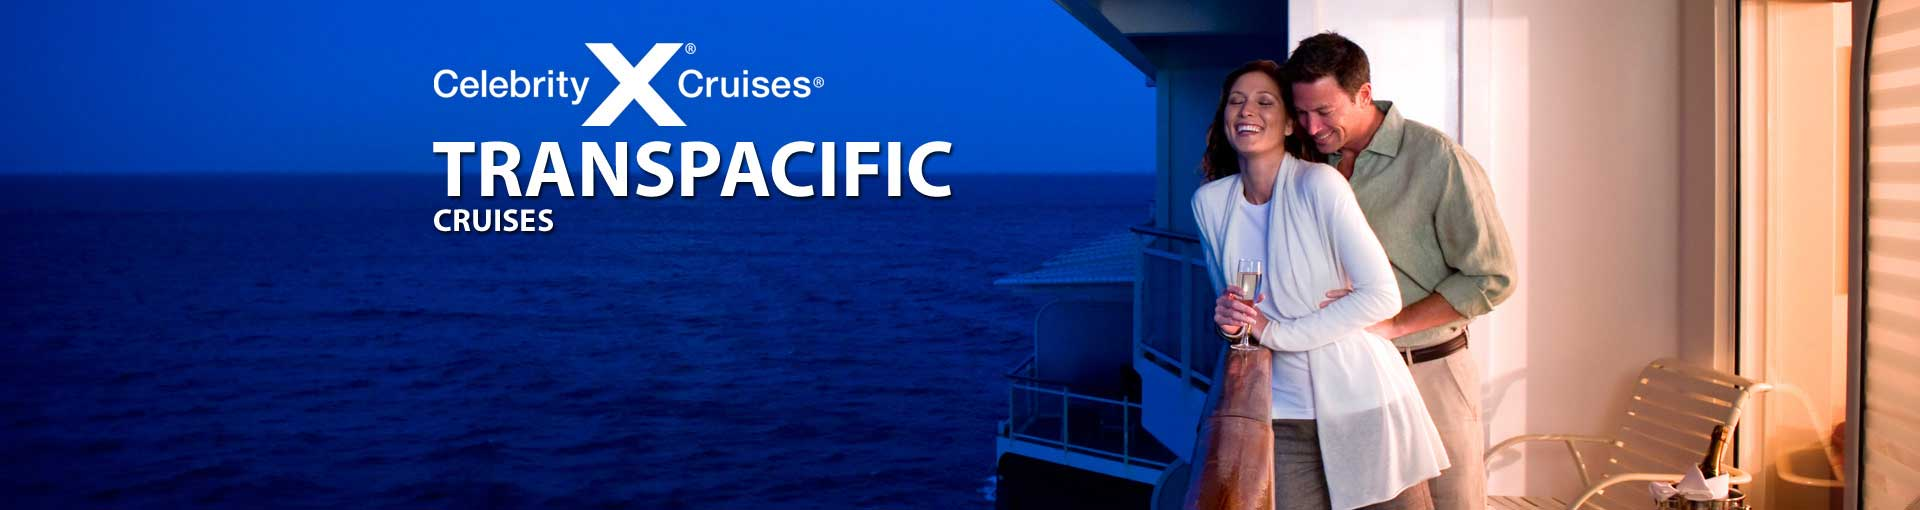 Celebrity Cruises Transpacific Cruises